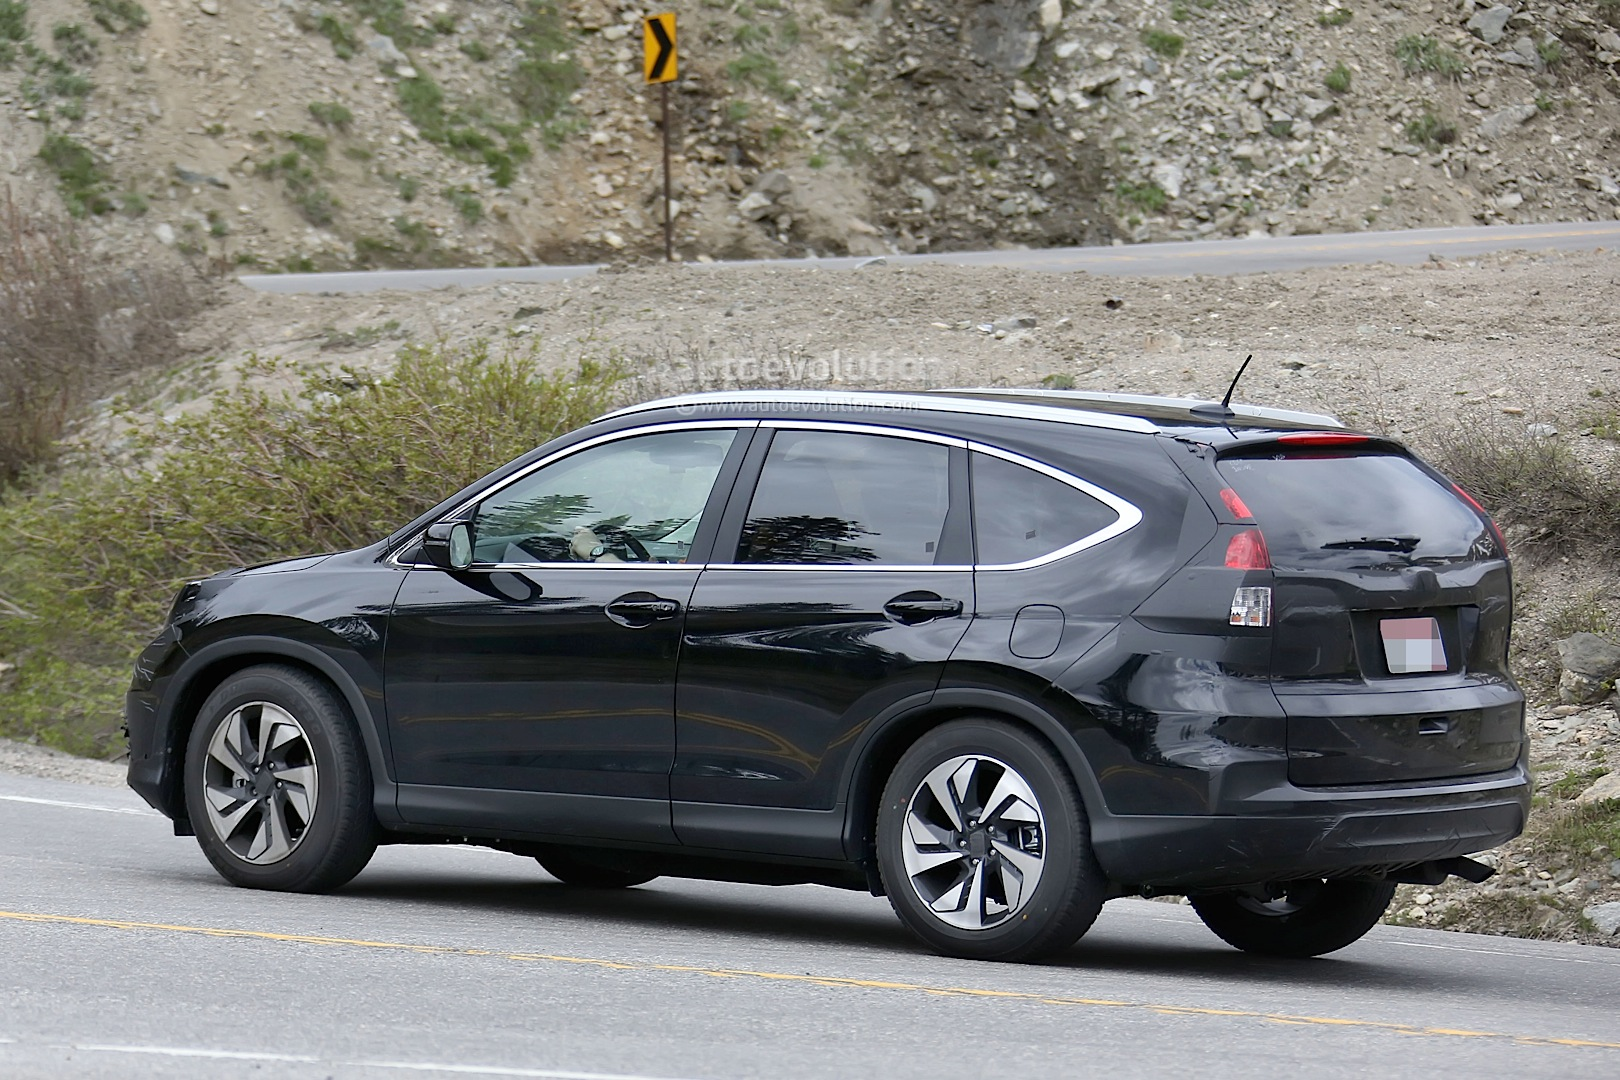 Spyshots 2016 Honda Cr V Facelift Testing In The Us Autoevolution